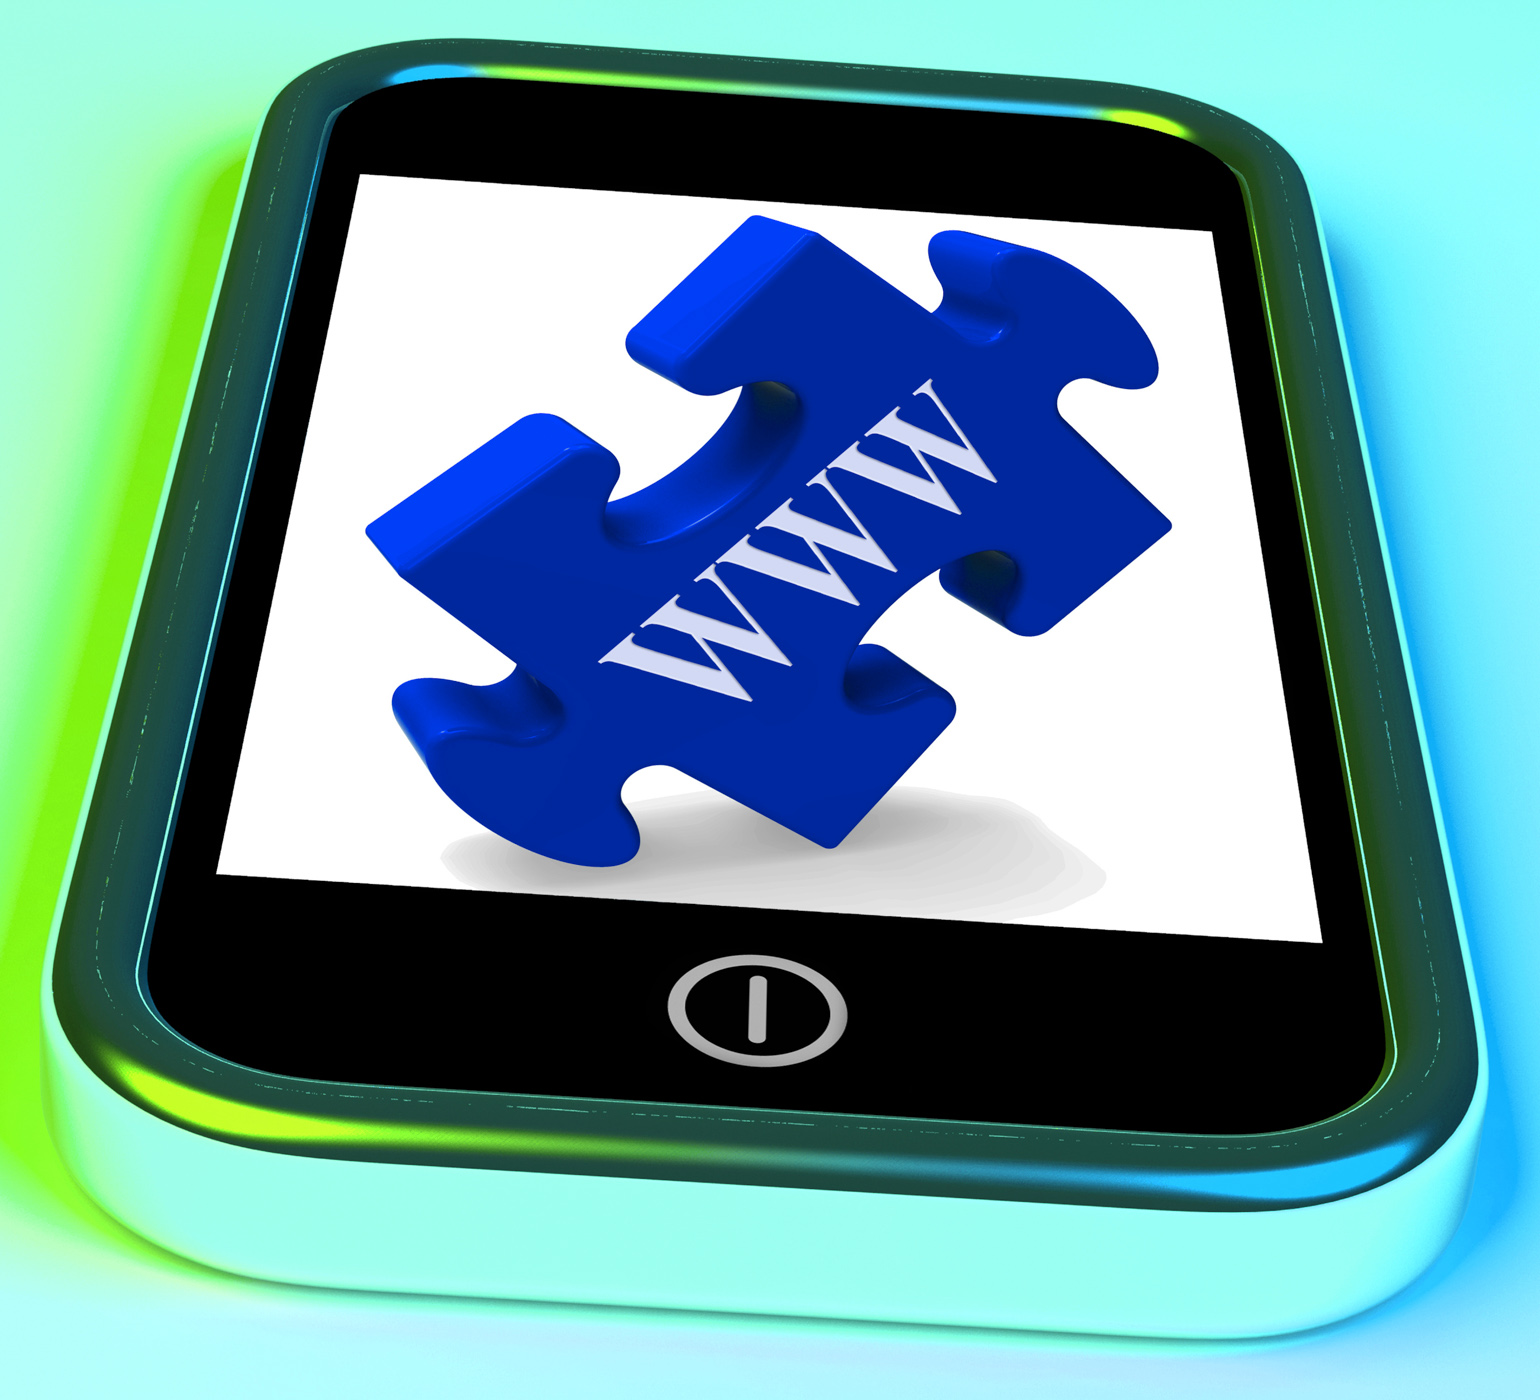 Www smartphone shows internet web and online photo